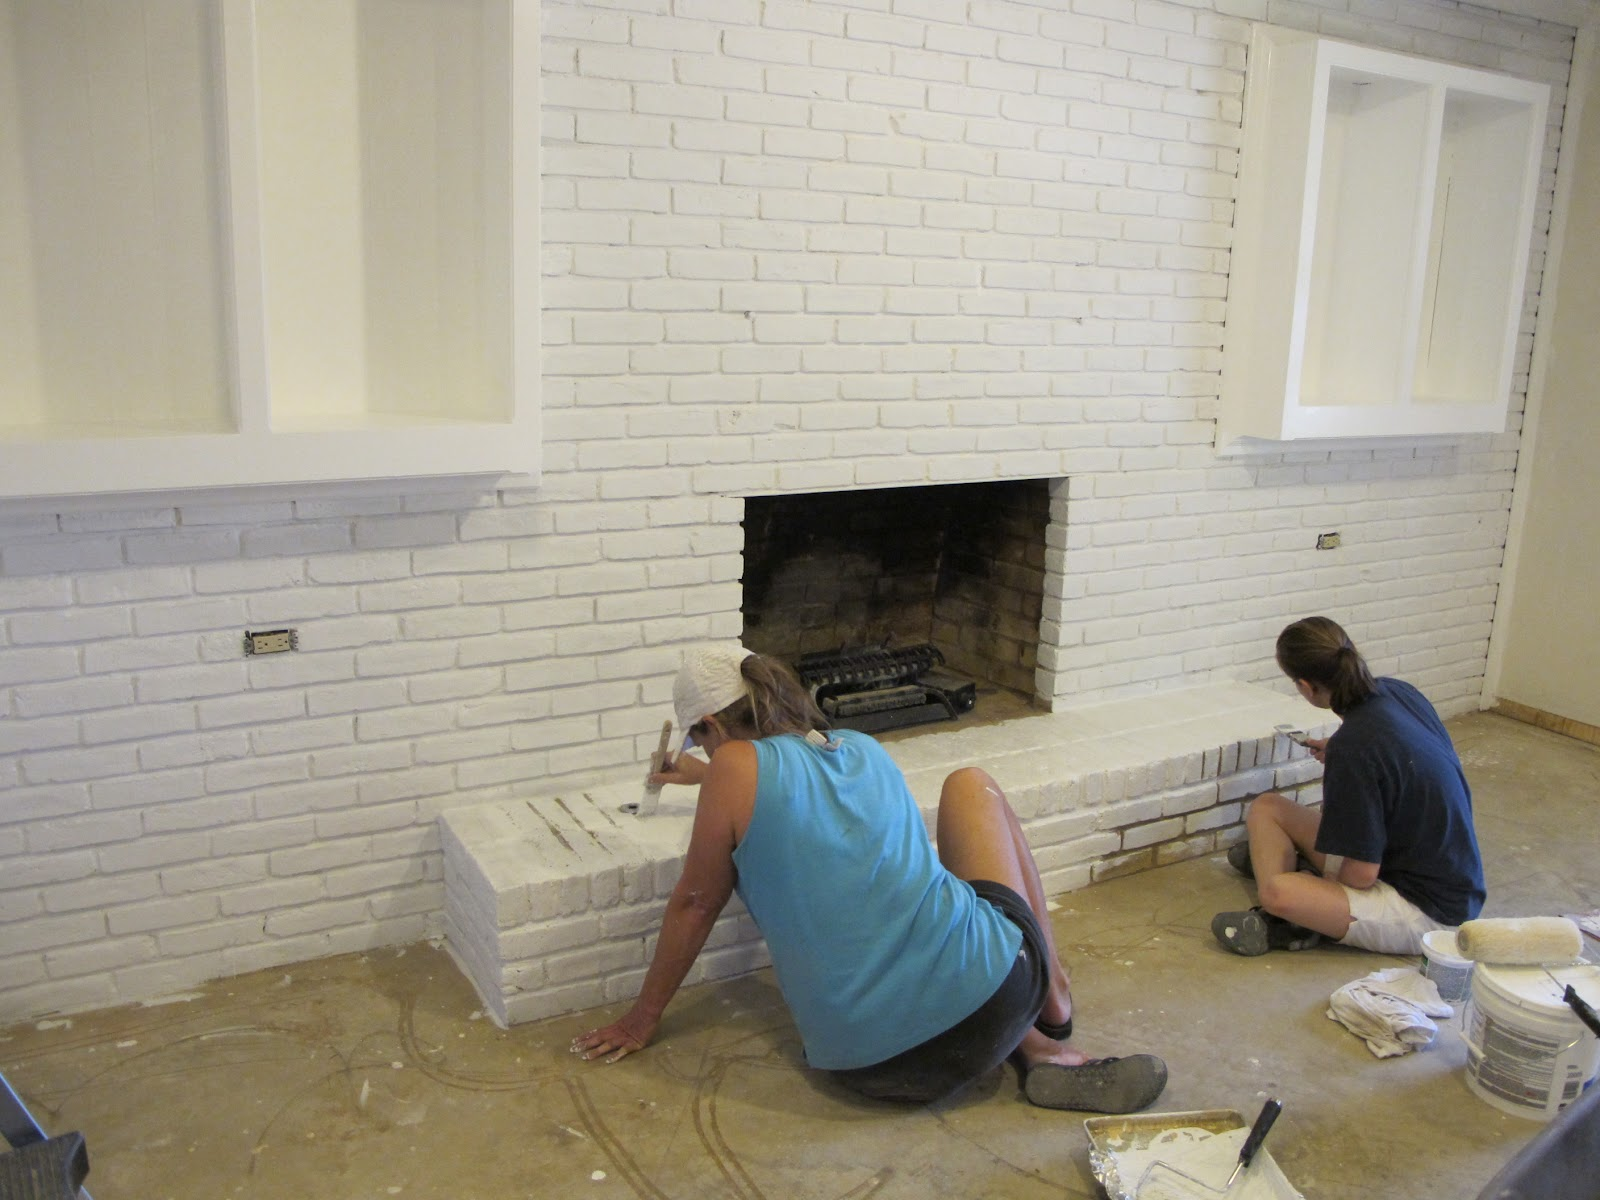 Painted the fireplace brick with a paint spray gun